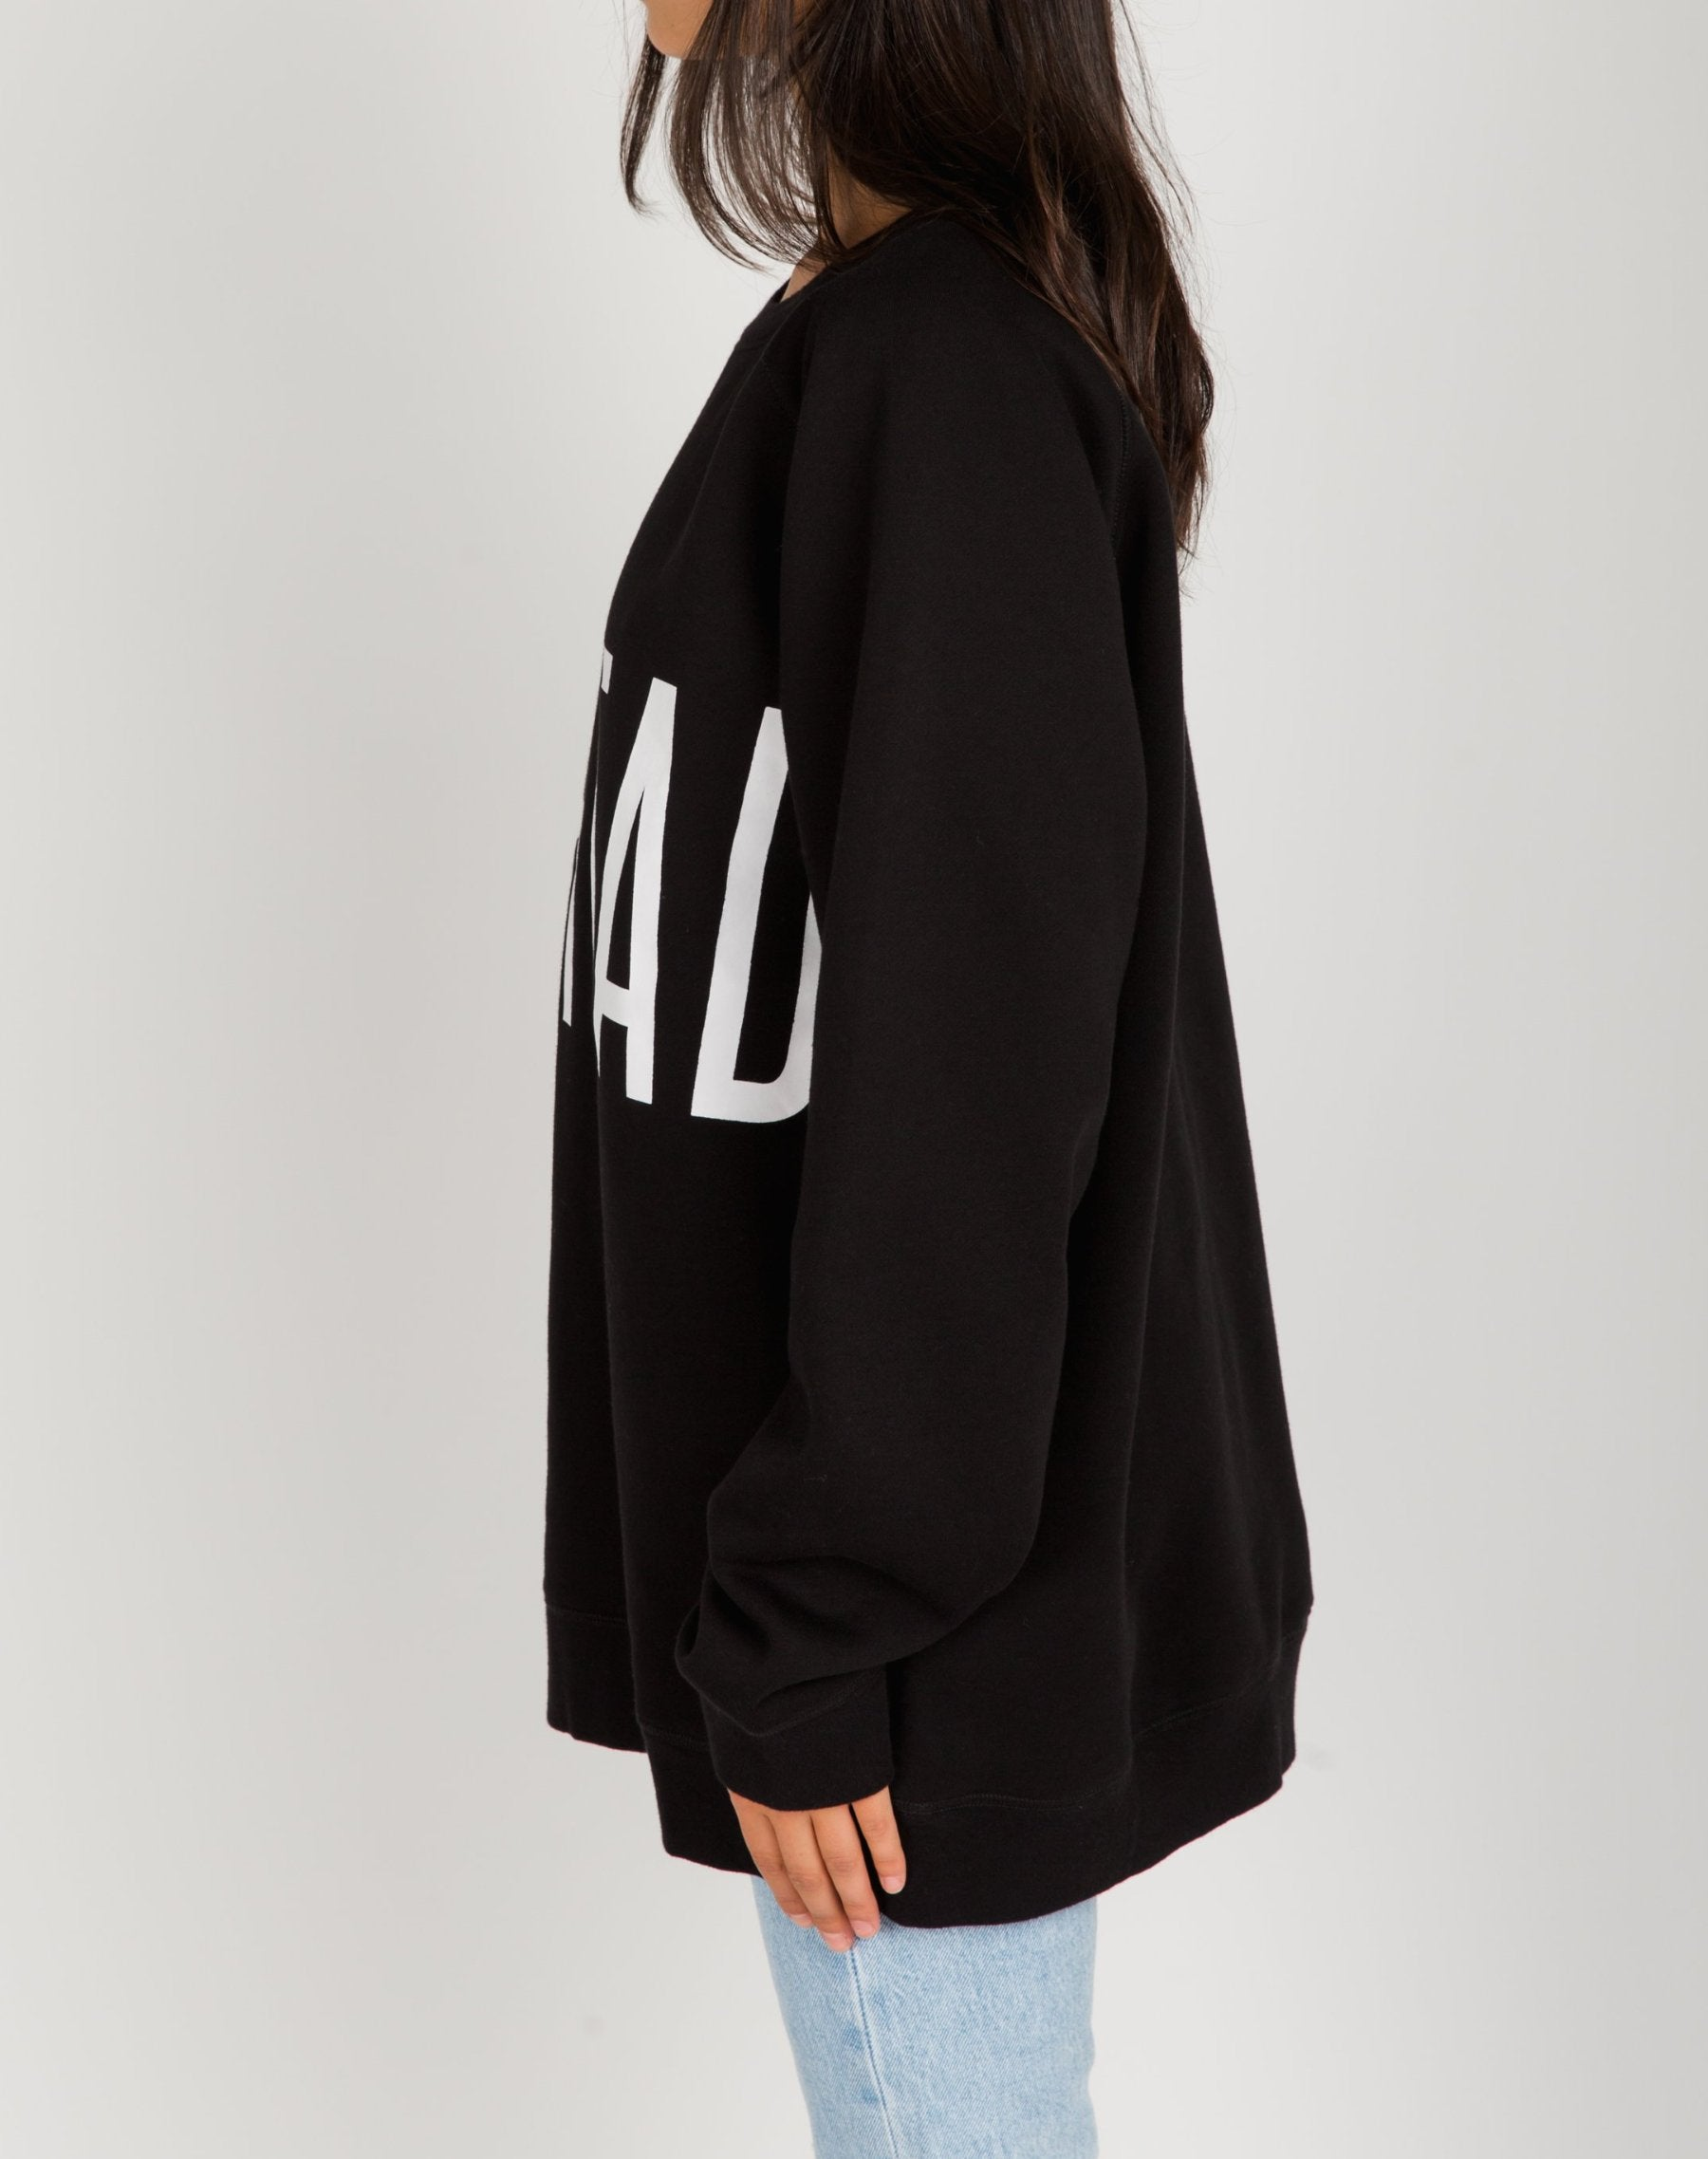 Photo of the side of the Redhead big sister crew neck sweatshirt in black by Brunette the Label.